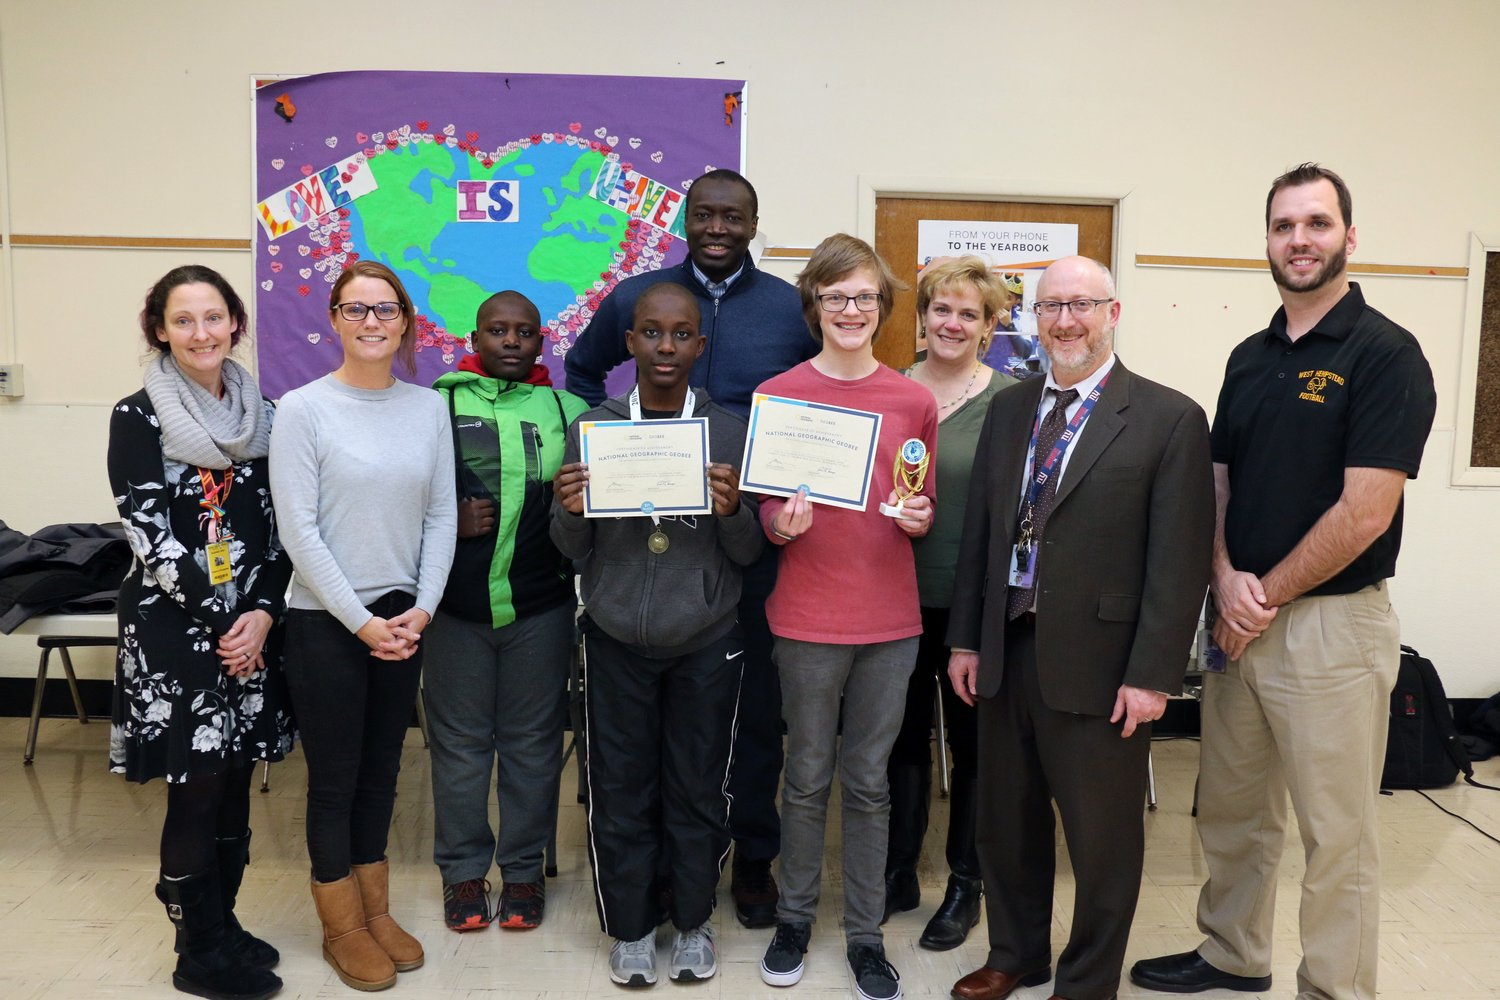 Eighth-grader Mouhammad Seck, fourth from left, above, won the West Hempstead Middle School Geography Bee competition for a third straight year on Jan. 23 while classmate Aiden Sargent was the runner up.